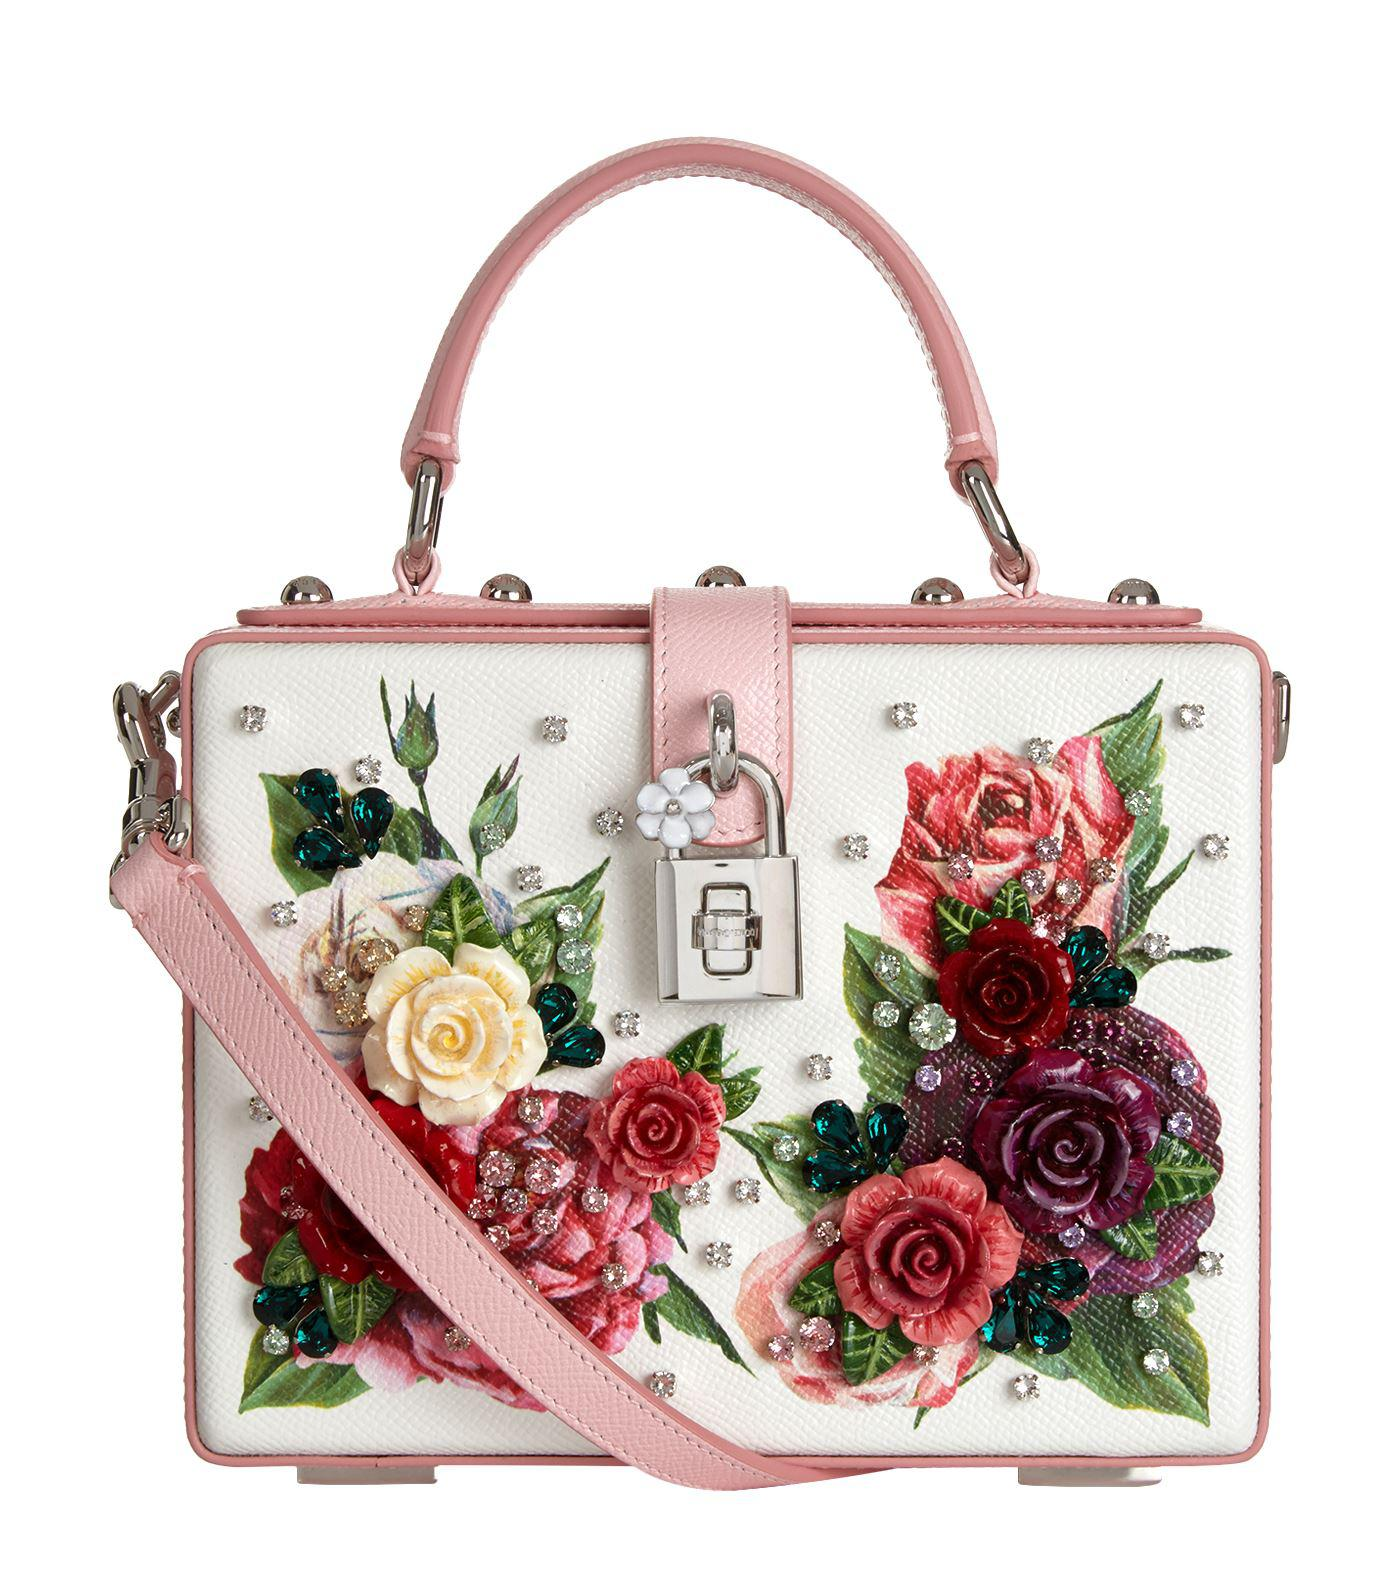 72cfd6e4a3b3 Dolce   Gabbana Leather Peony Box Bag in Red - Lyst